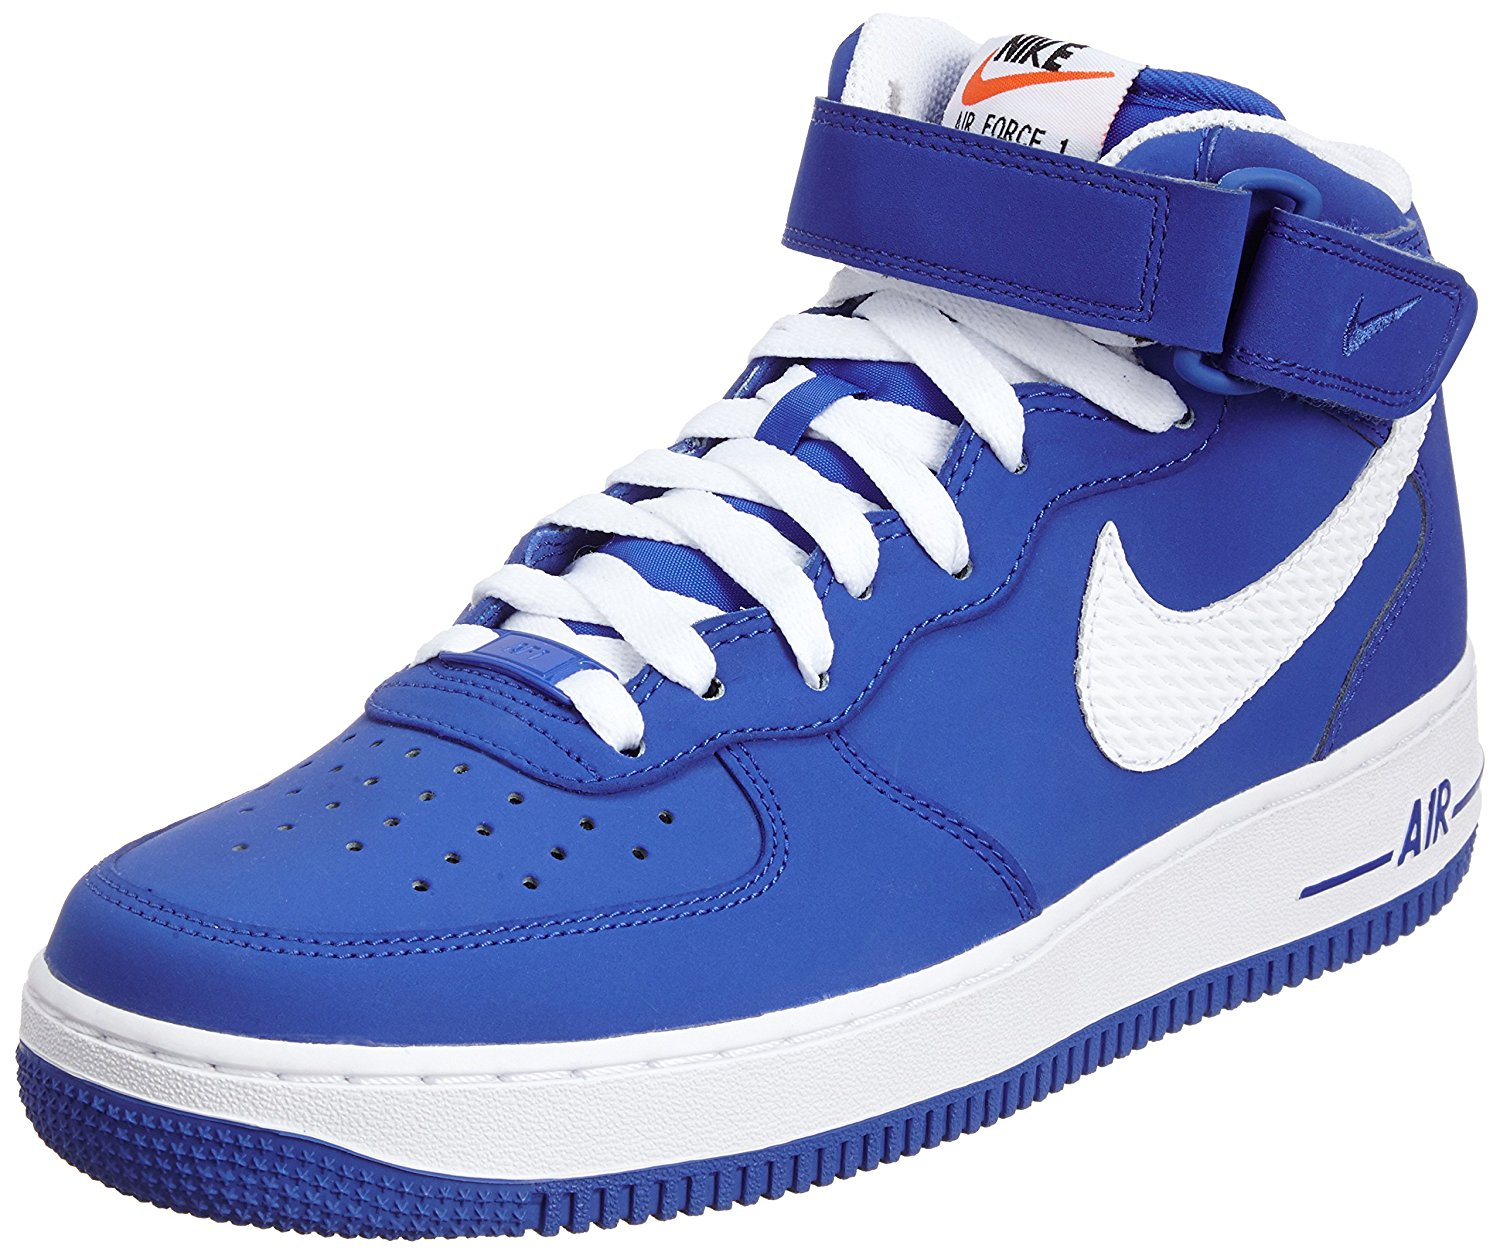 timeless design a486e 31019 Get Quotations · Nike Air Force 1 Mid  07 Mens Basketball Shoes 315123-405